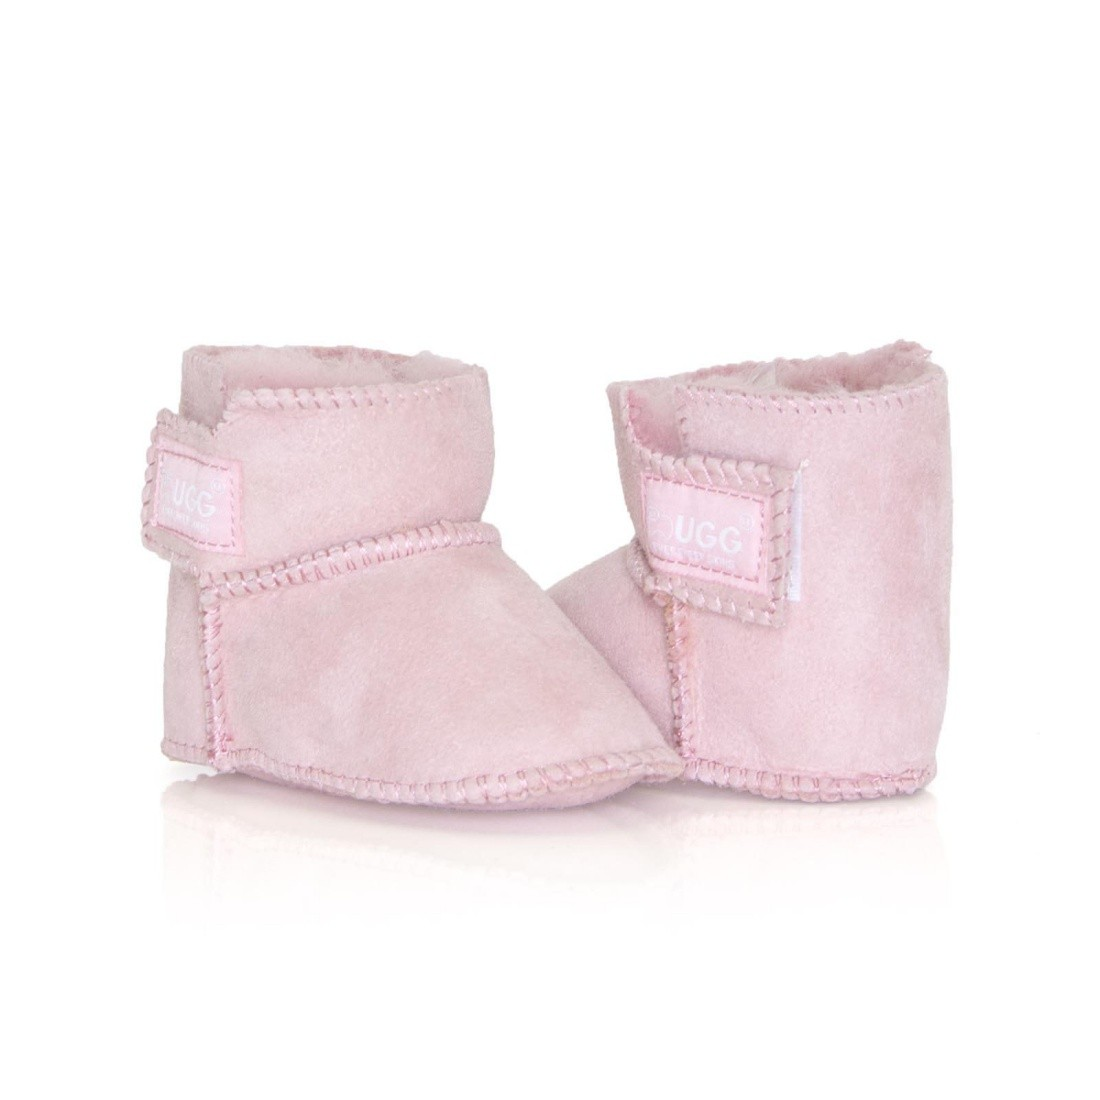 UGG Baby Erin Bootie Infant Boots - Pink - L